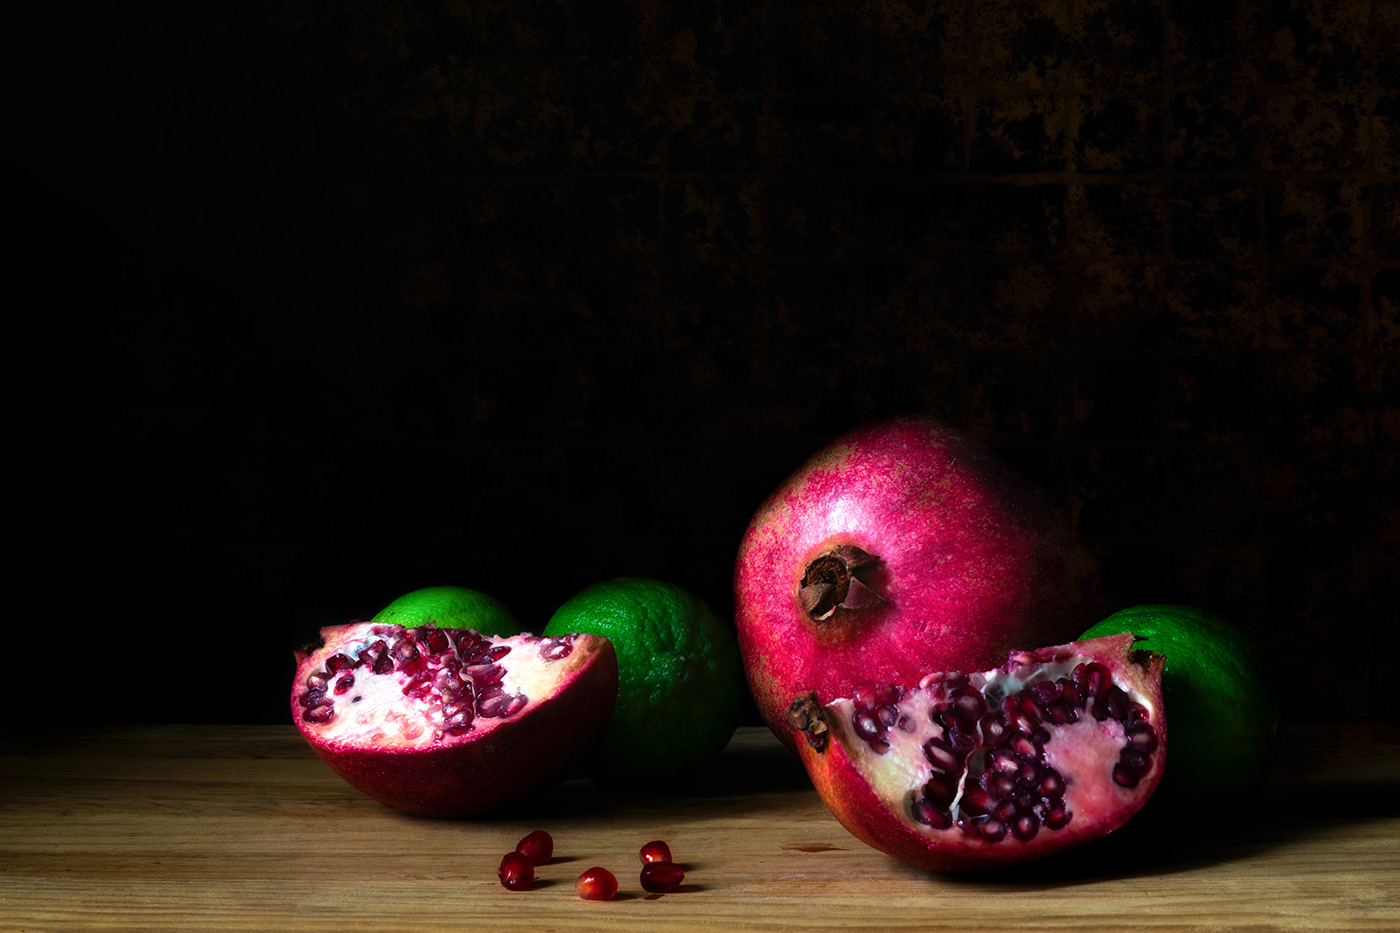 Lemons and pomegranates / фото S Plumauvent